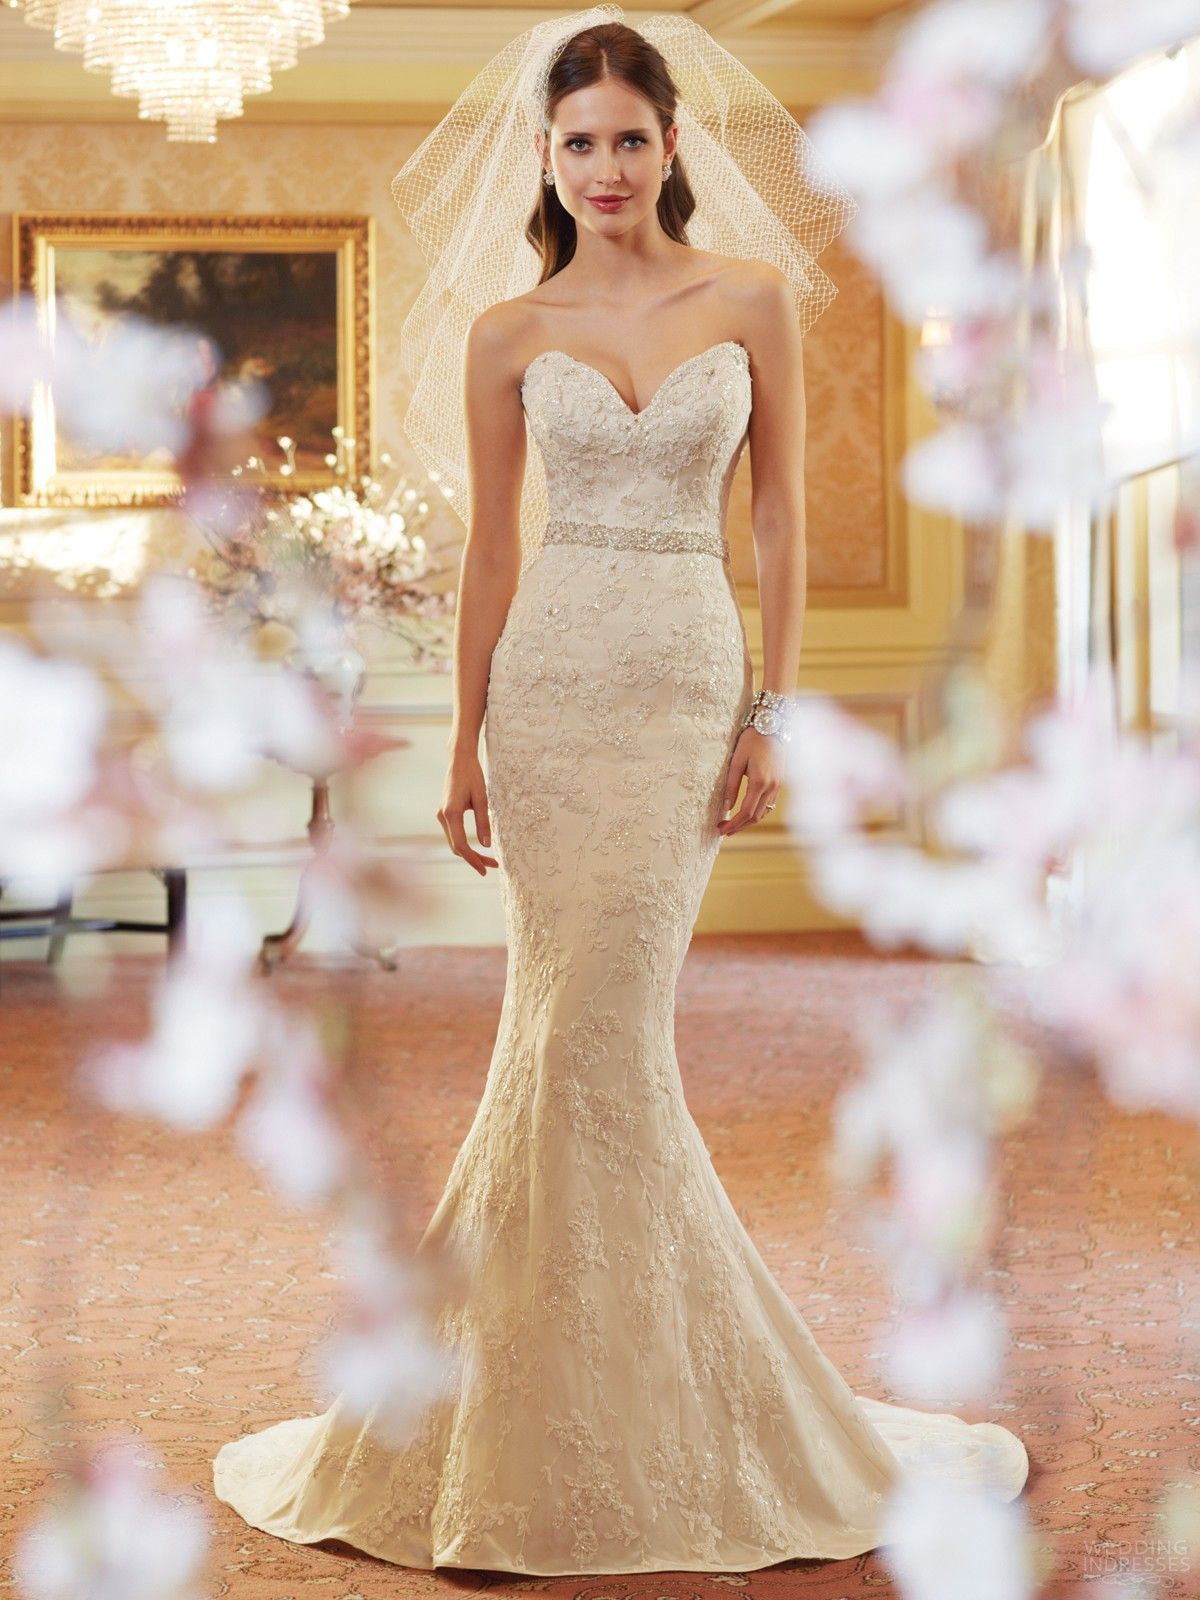 Sweetheart Lace Trumpet Wedding Dress - Missy Dress